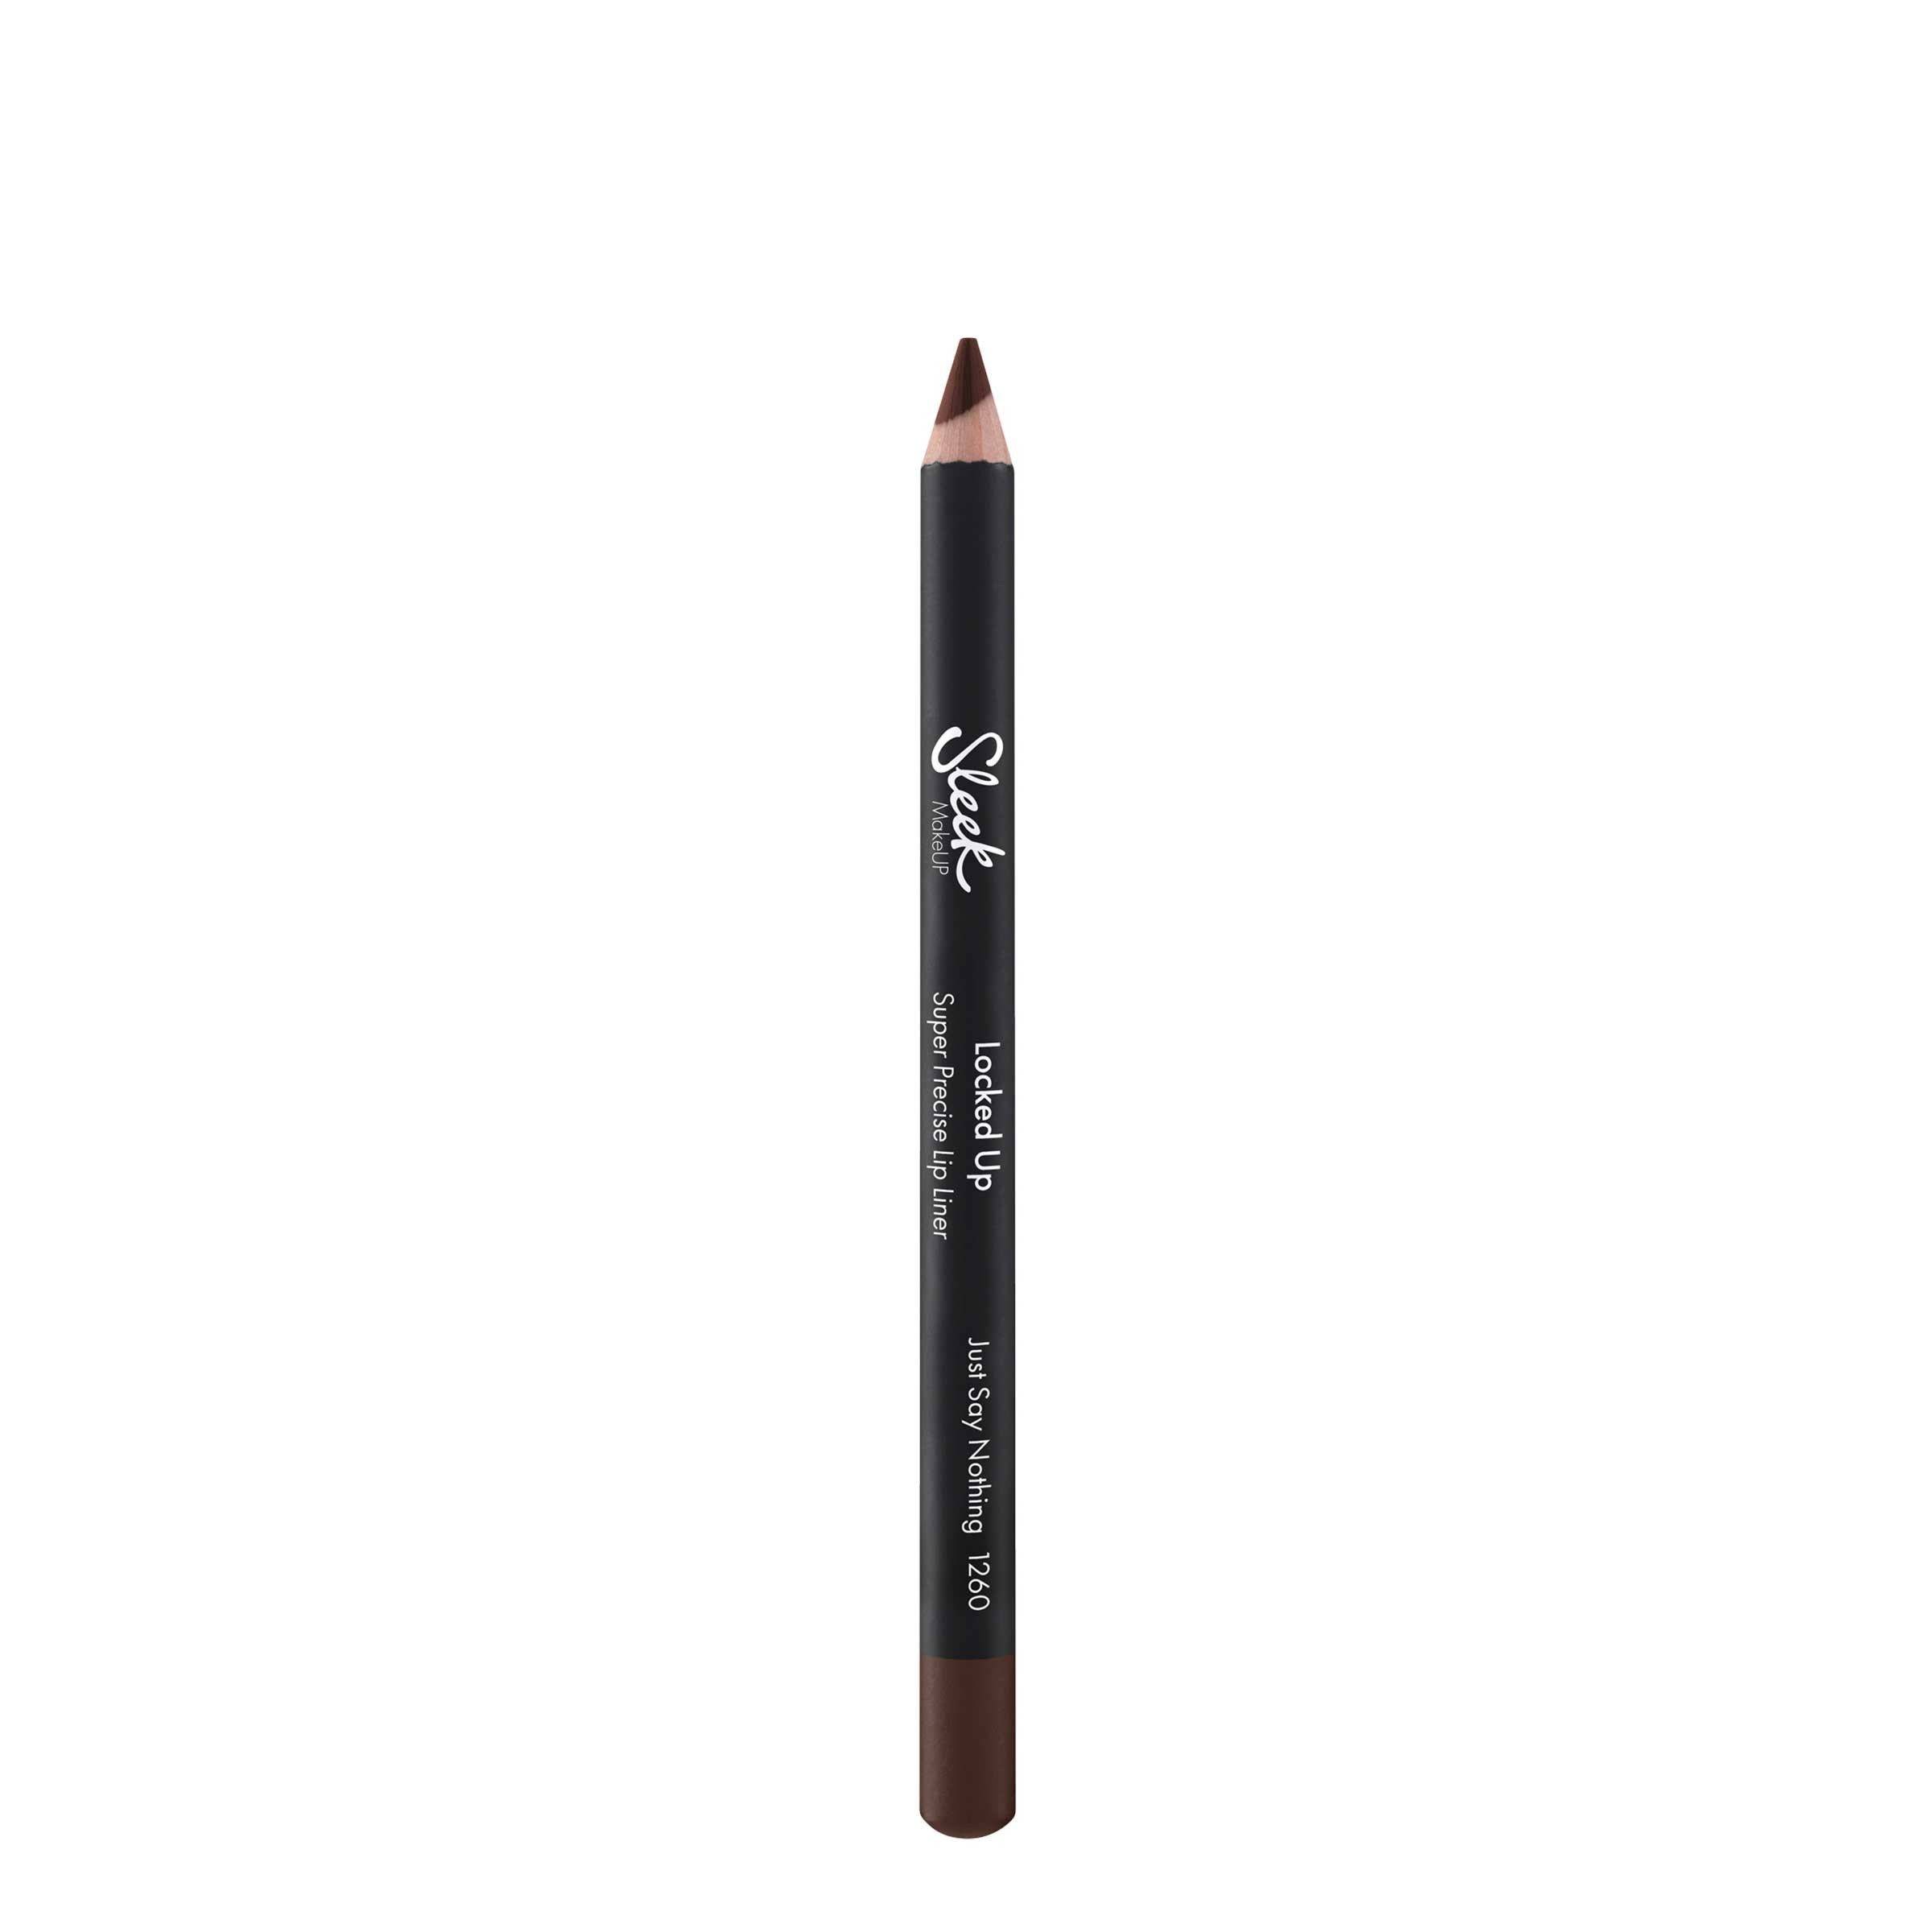 Lipliner - Locked Up Super Precise Lip Liner